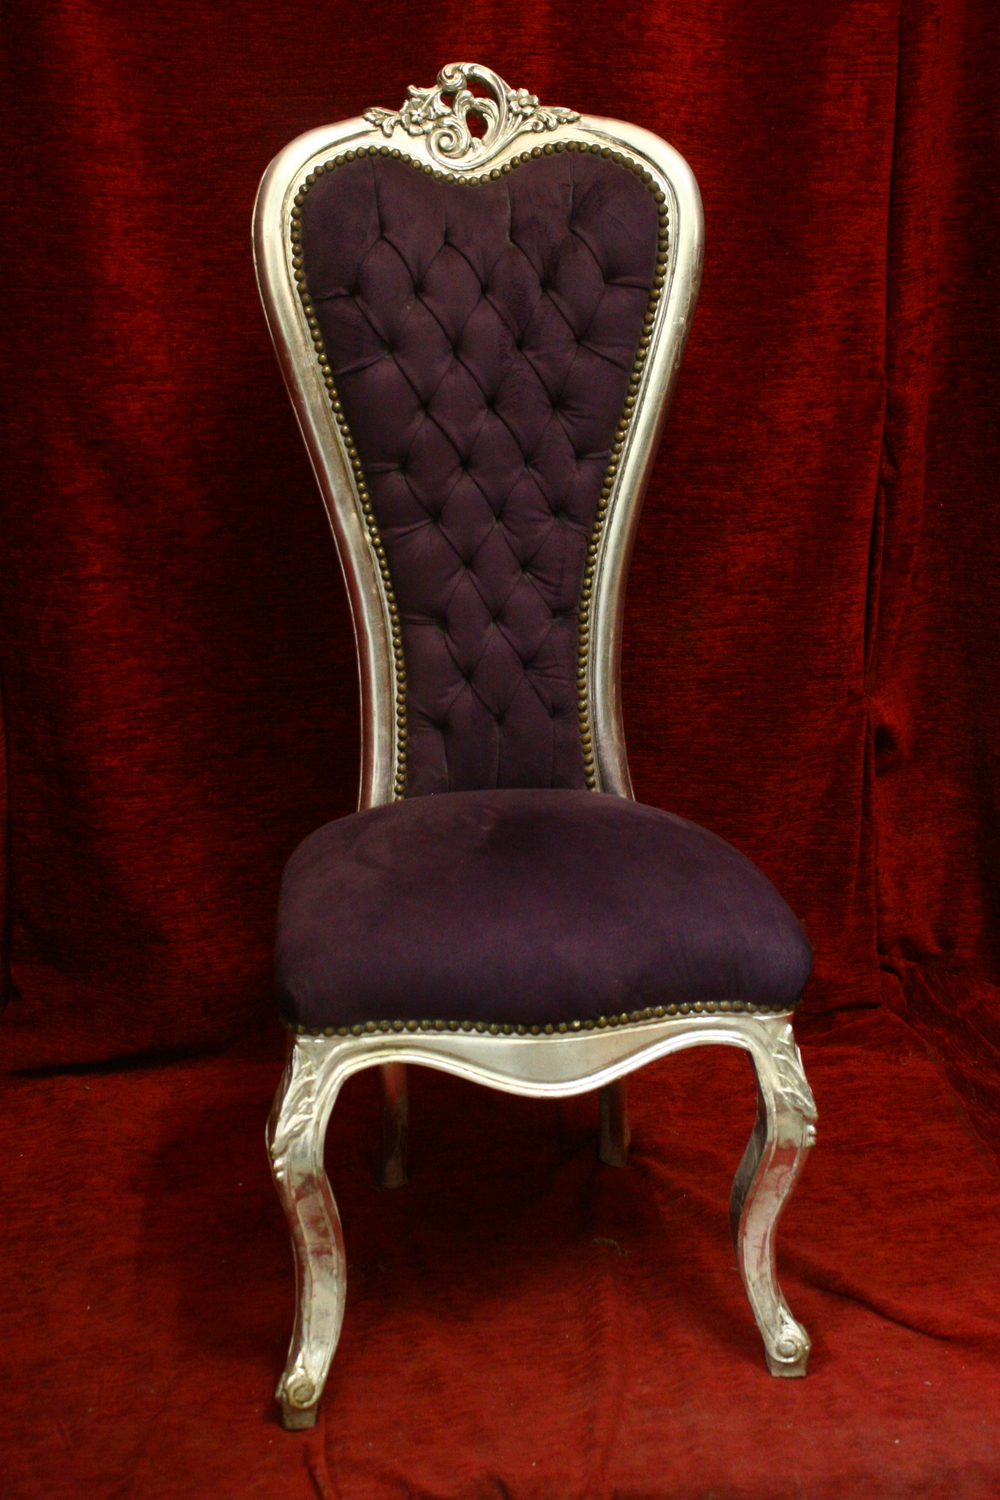 Renaissance Antique Dublin Ireland MODERN TALL BACKED SILVER FRAMED CHAIR